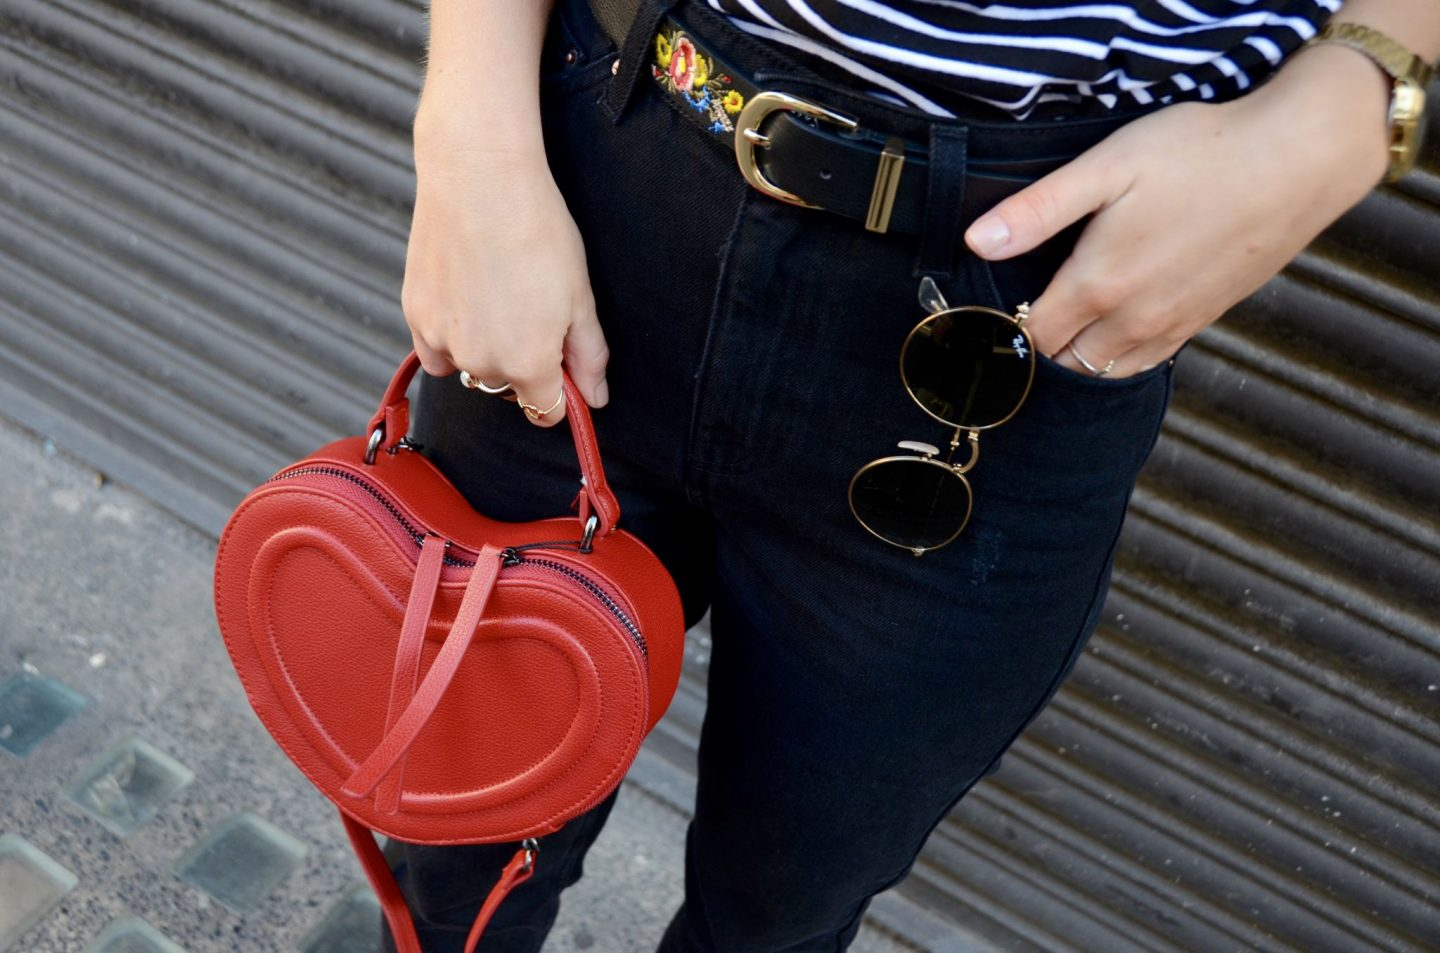 lauras little locket, laura byrnes, fashion blogger, london, maggie red boots, red boots, red accessories, red heart bag, how to wear red,